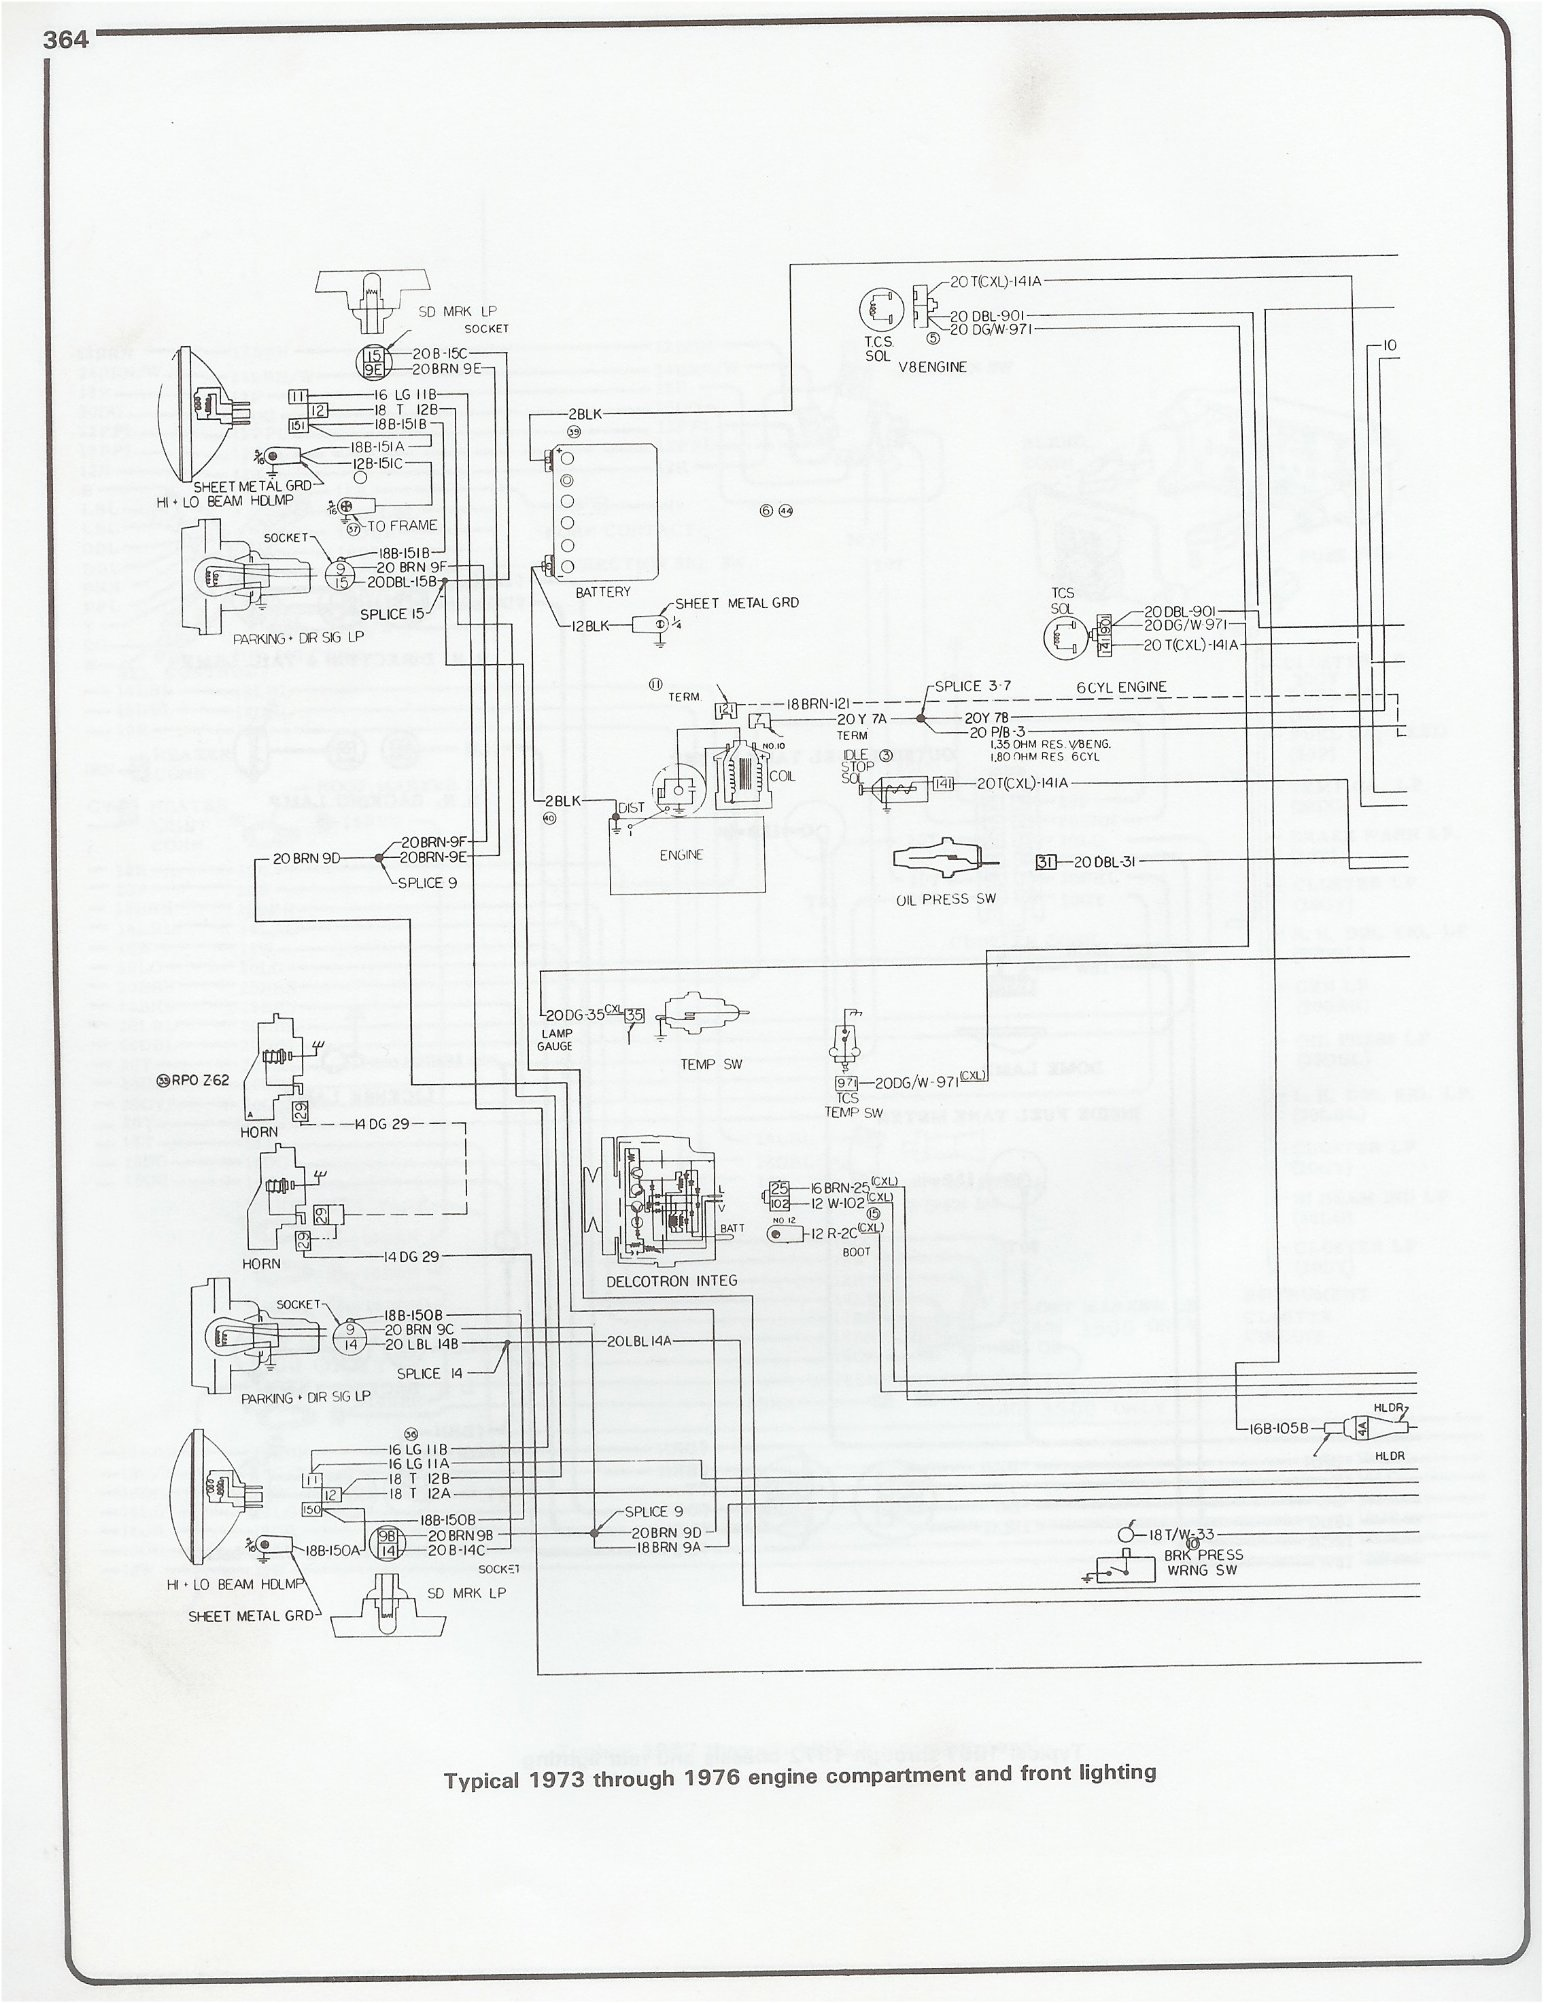 Complete 73 87 Wiring Diagrams 82 Chevy Pickup Ac Diagram 76 Engine And Front Lighting